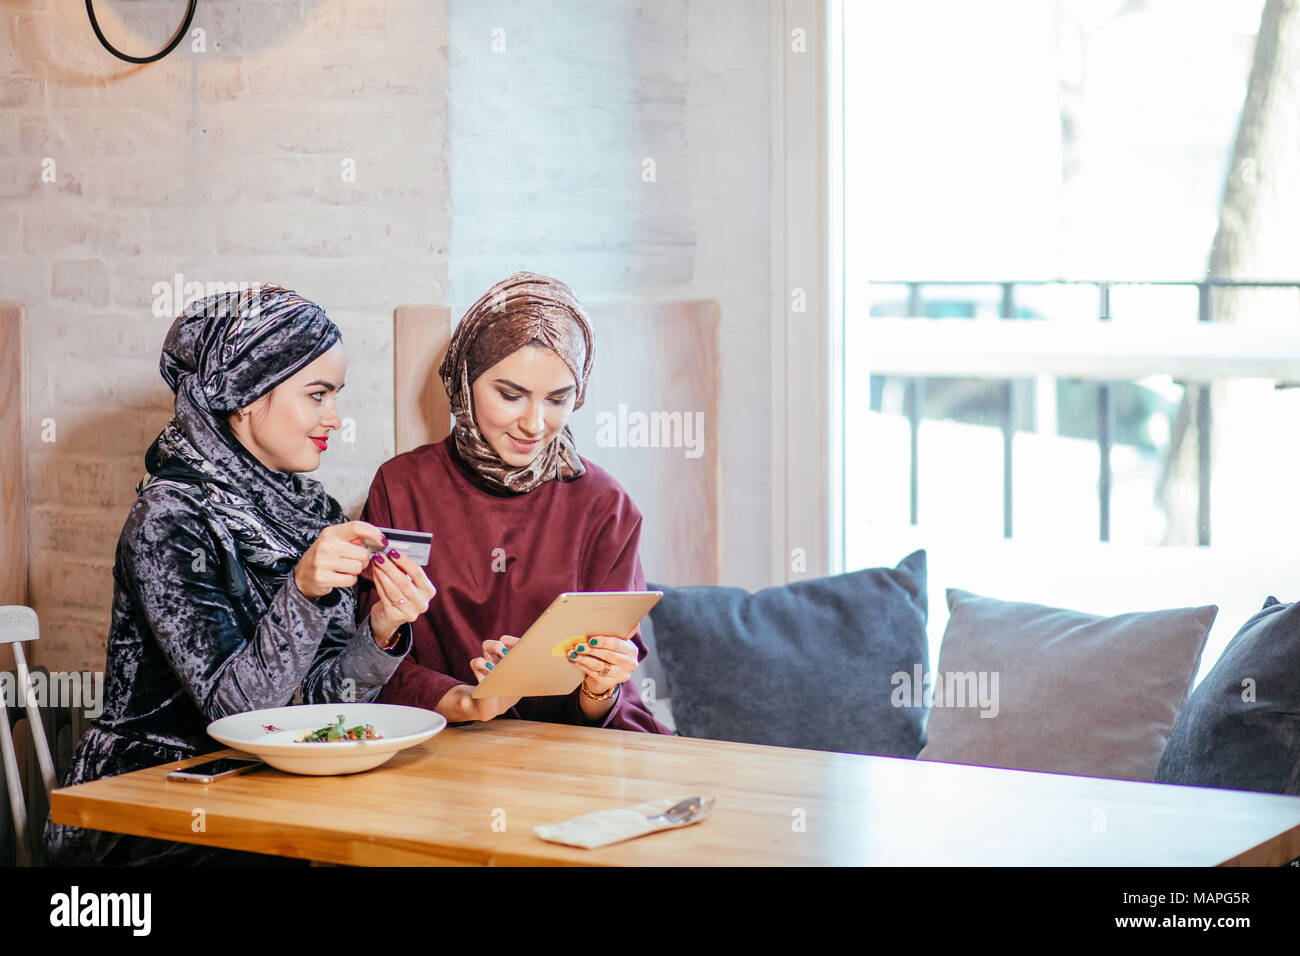 Two Muslim women in cafe, shop online using electronic tablet - Stock Image